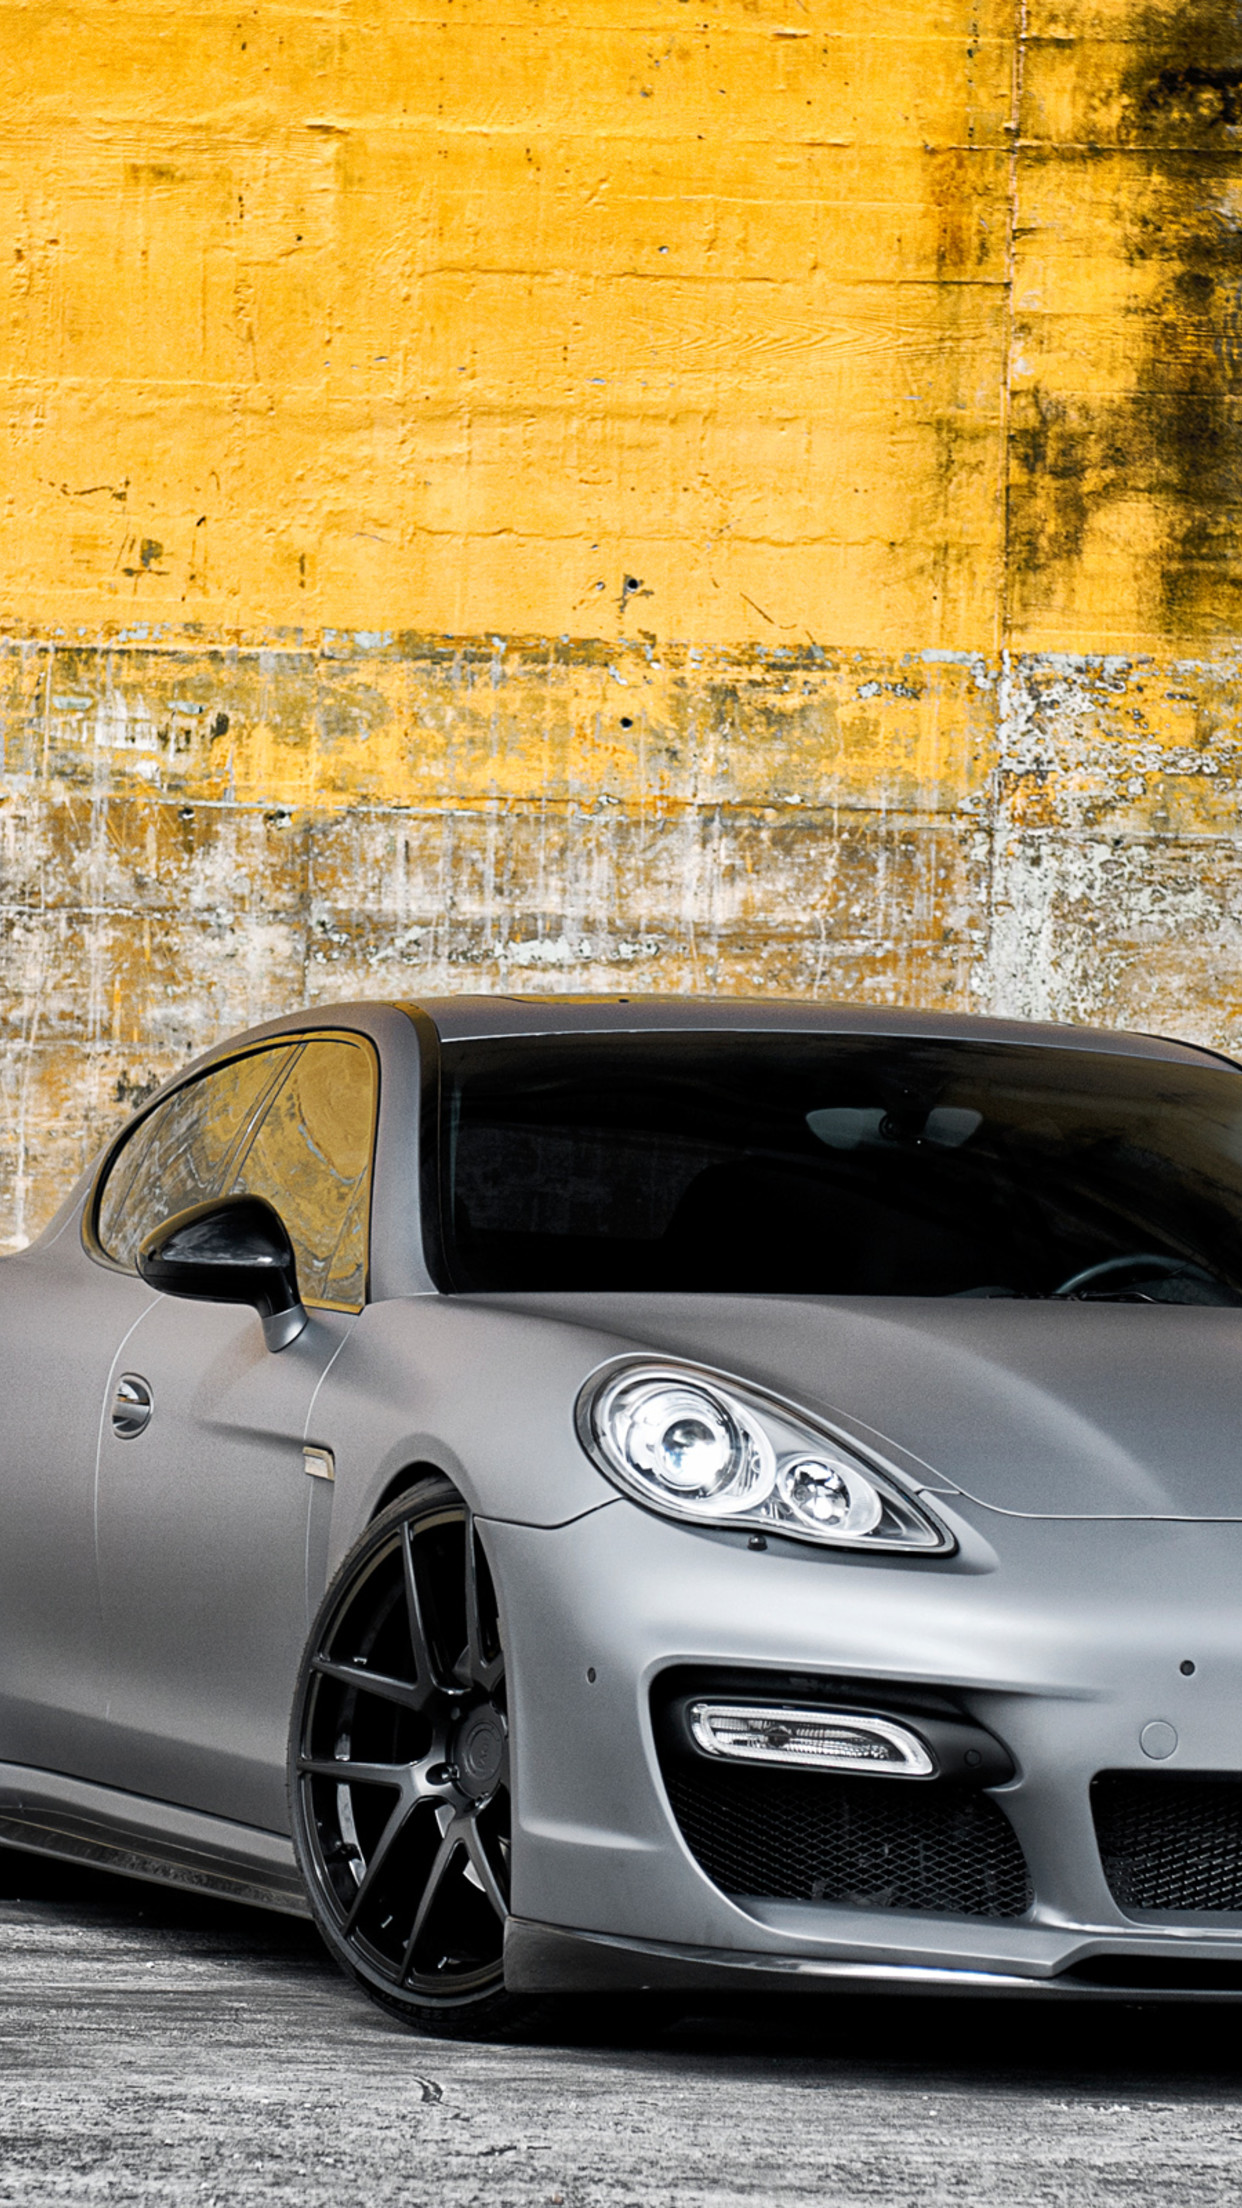 Porsche Panamera Wallpaper For Iphone X 8 7 6 Free Download On